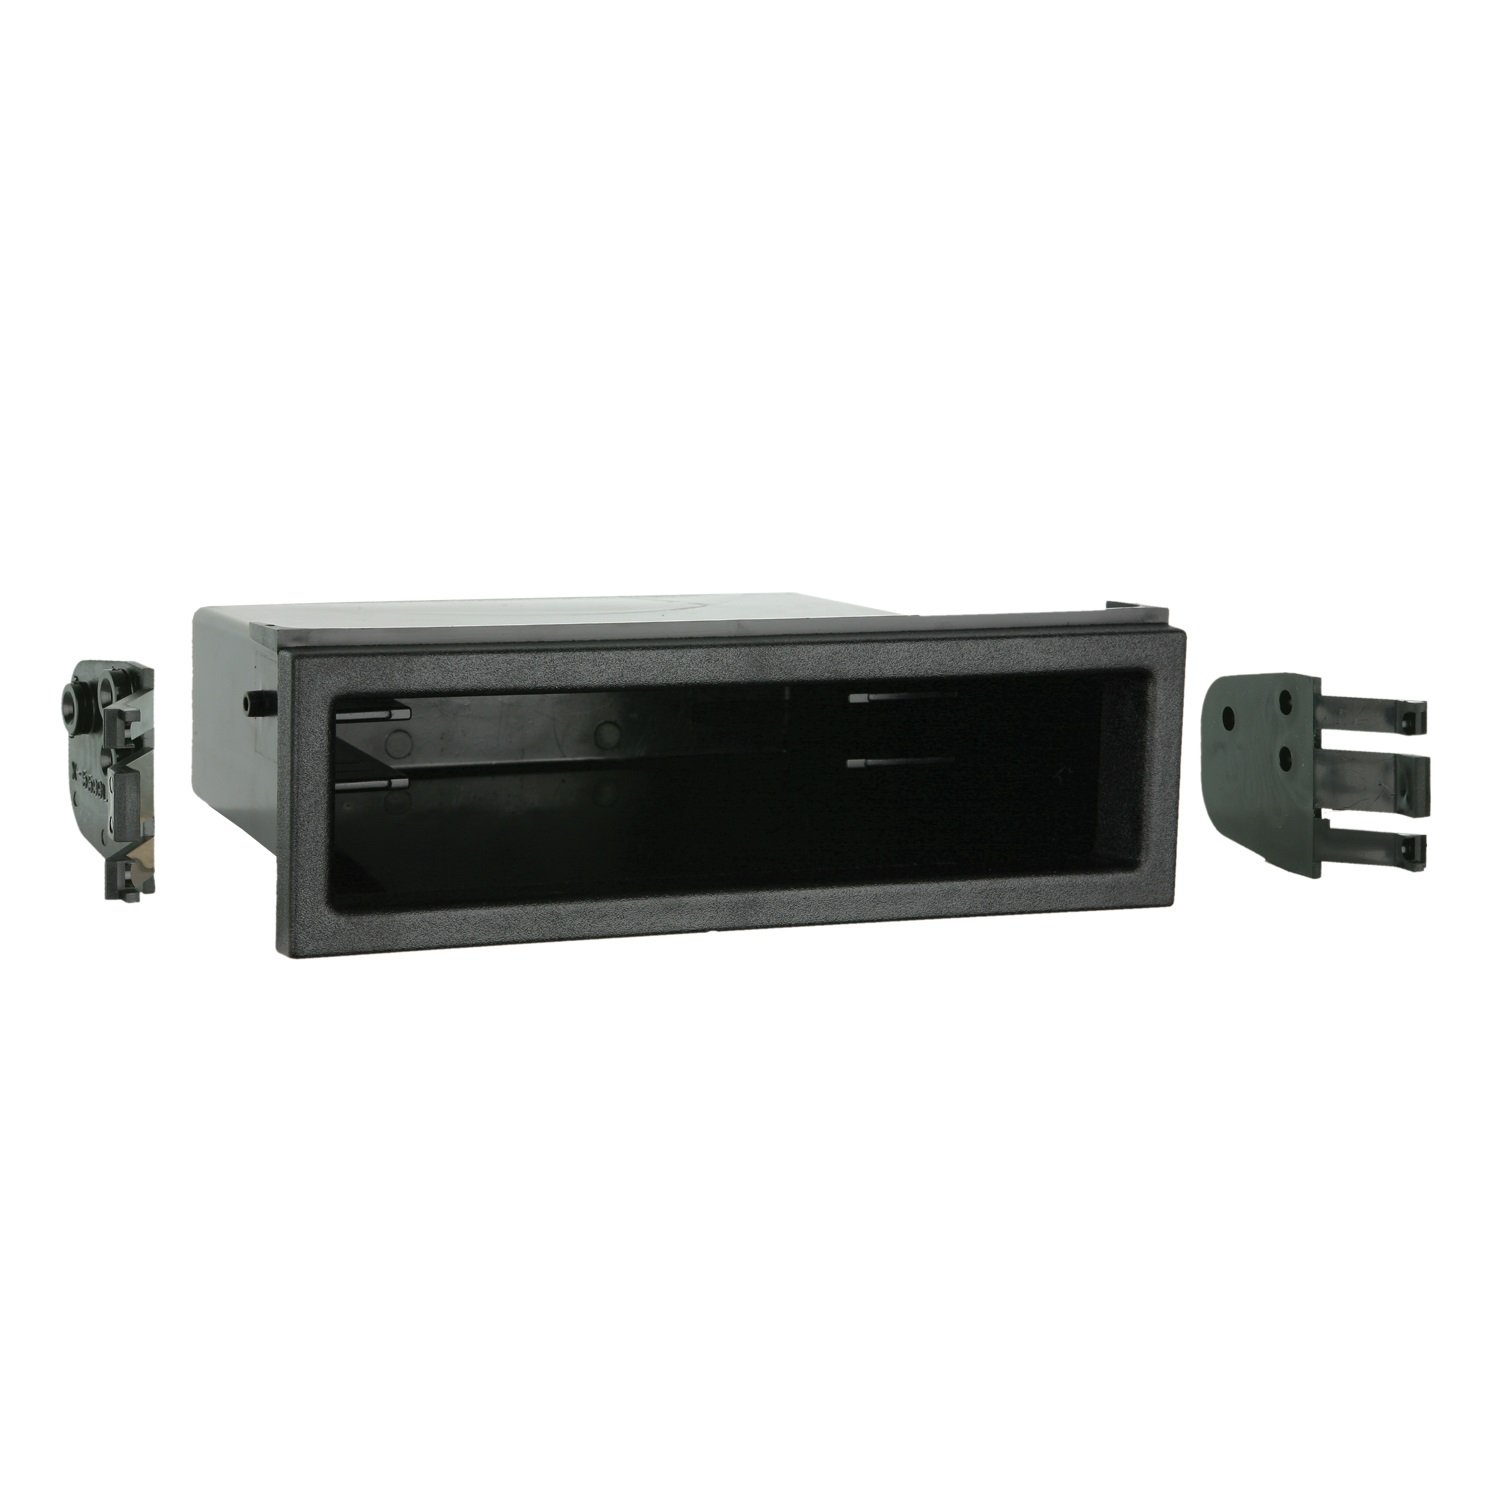 Metra 88-00-9008 Double-DIN Pocket Radio Installation Kit For Select Volkswagen Vehicles Metra Electronics Corporation